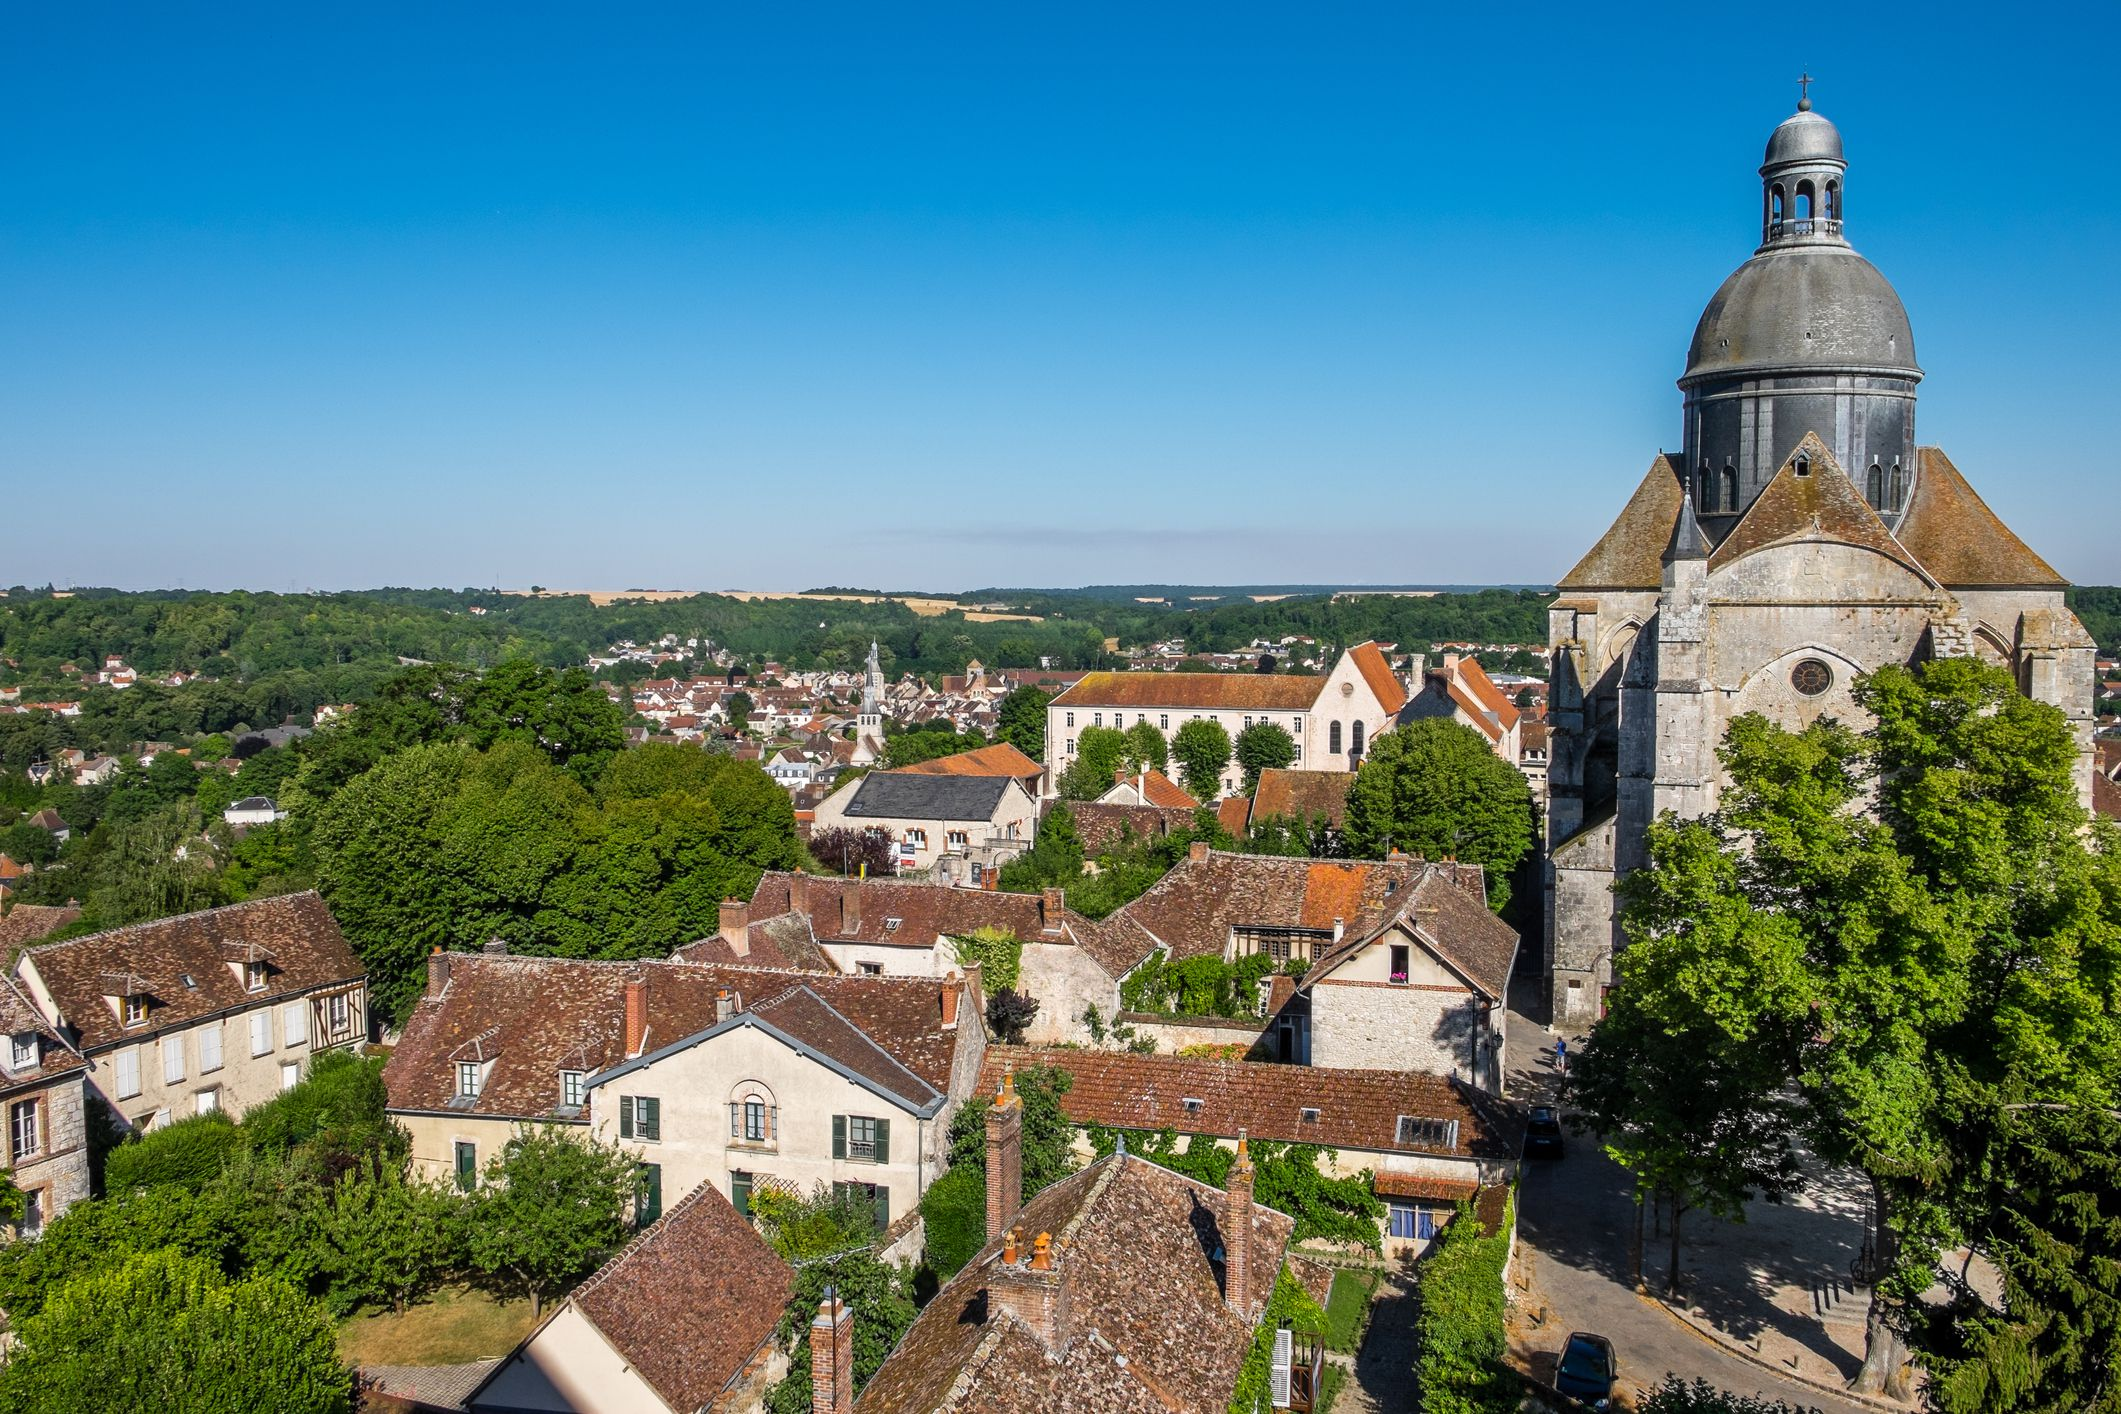 Aerial view of the town of Provins in France.